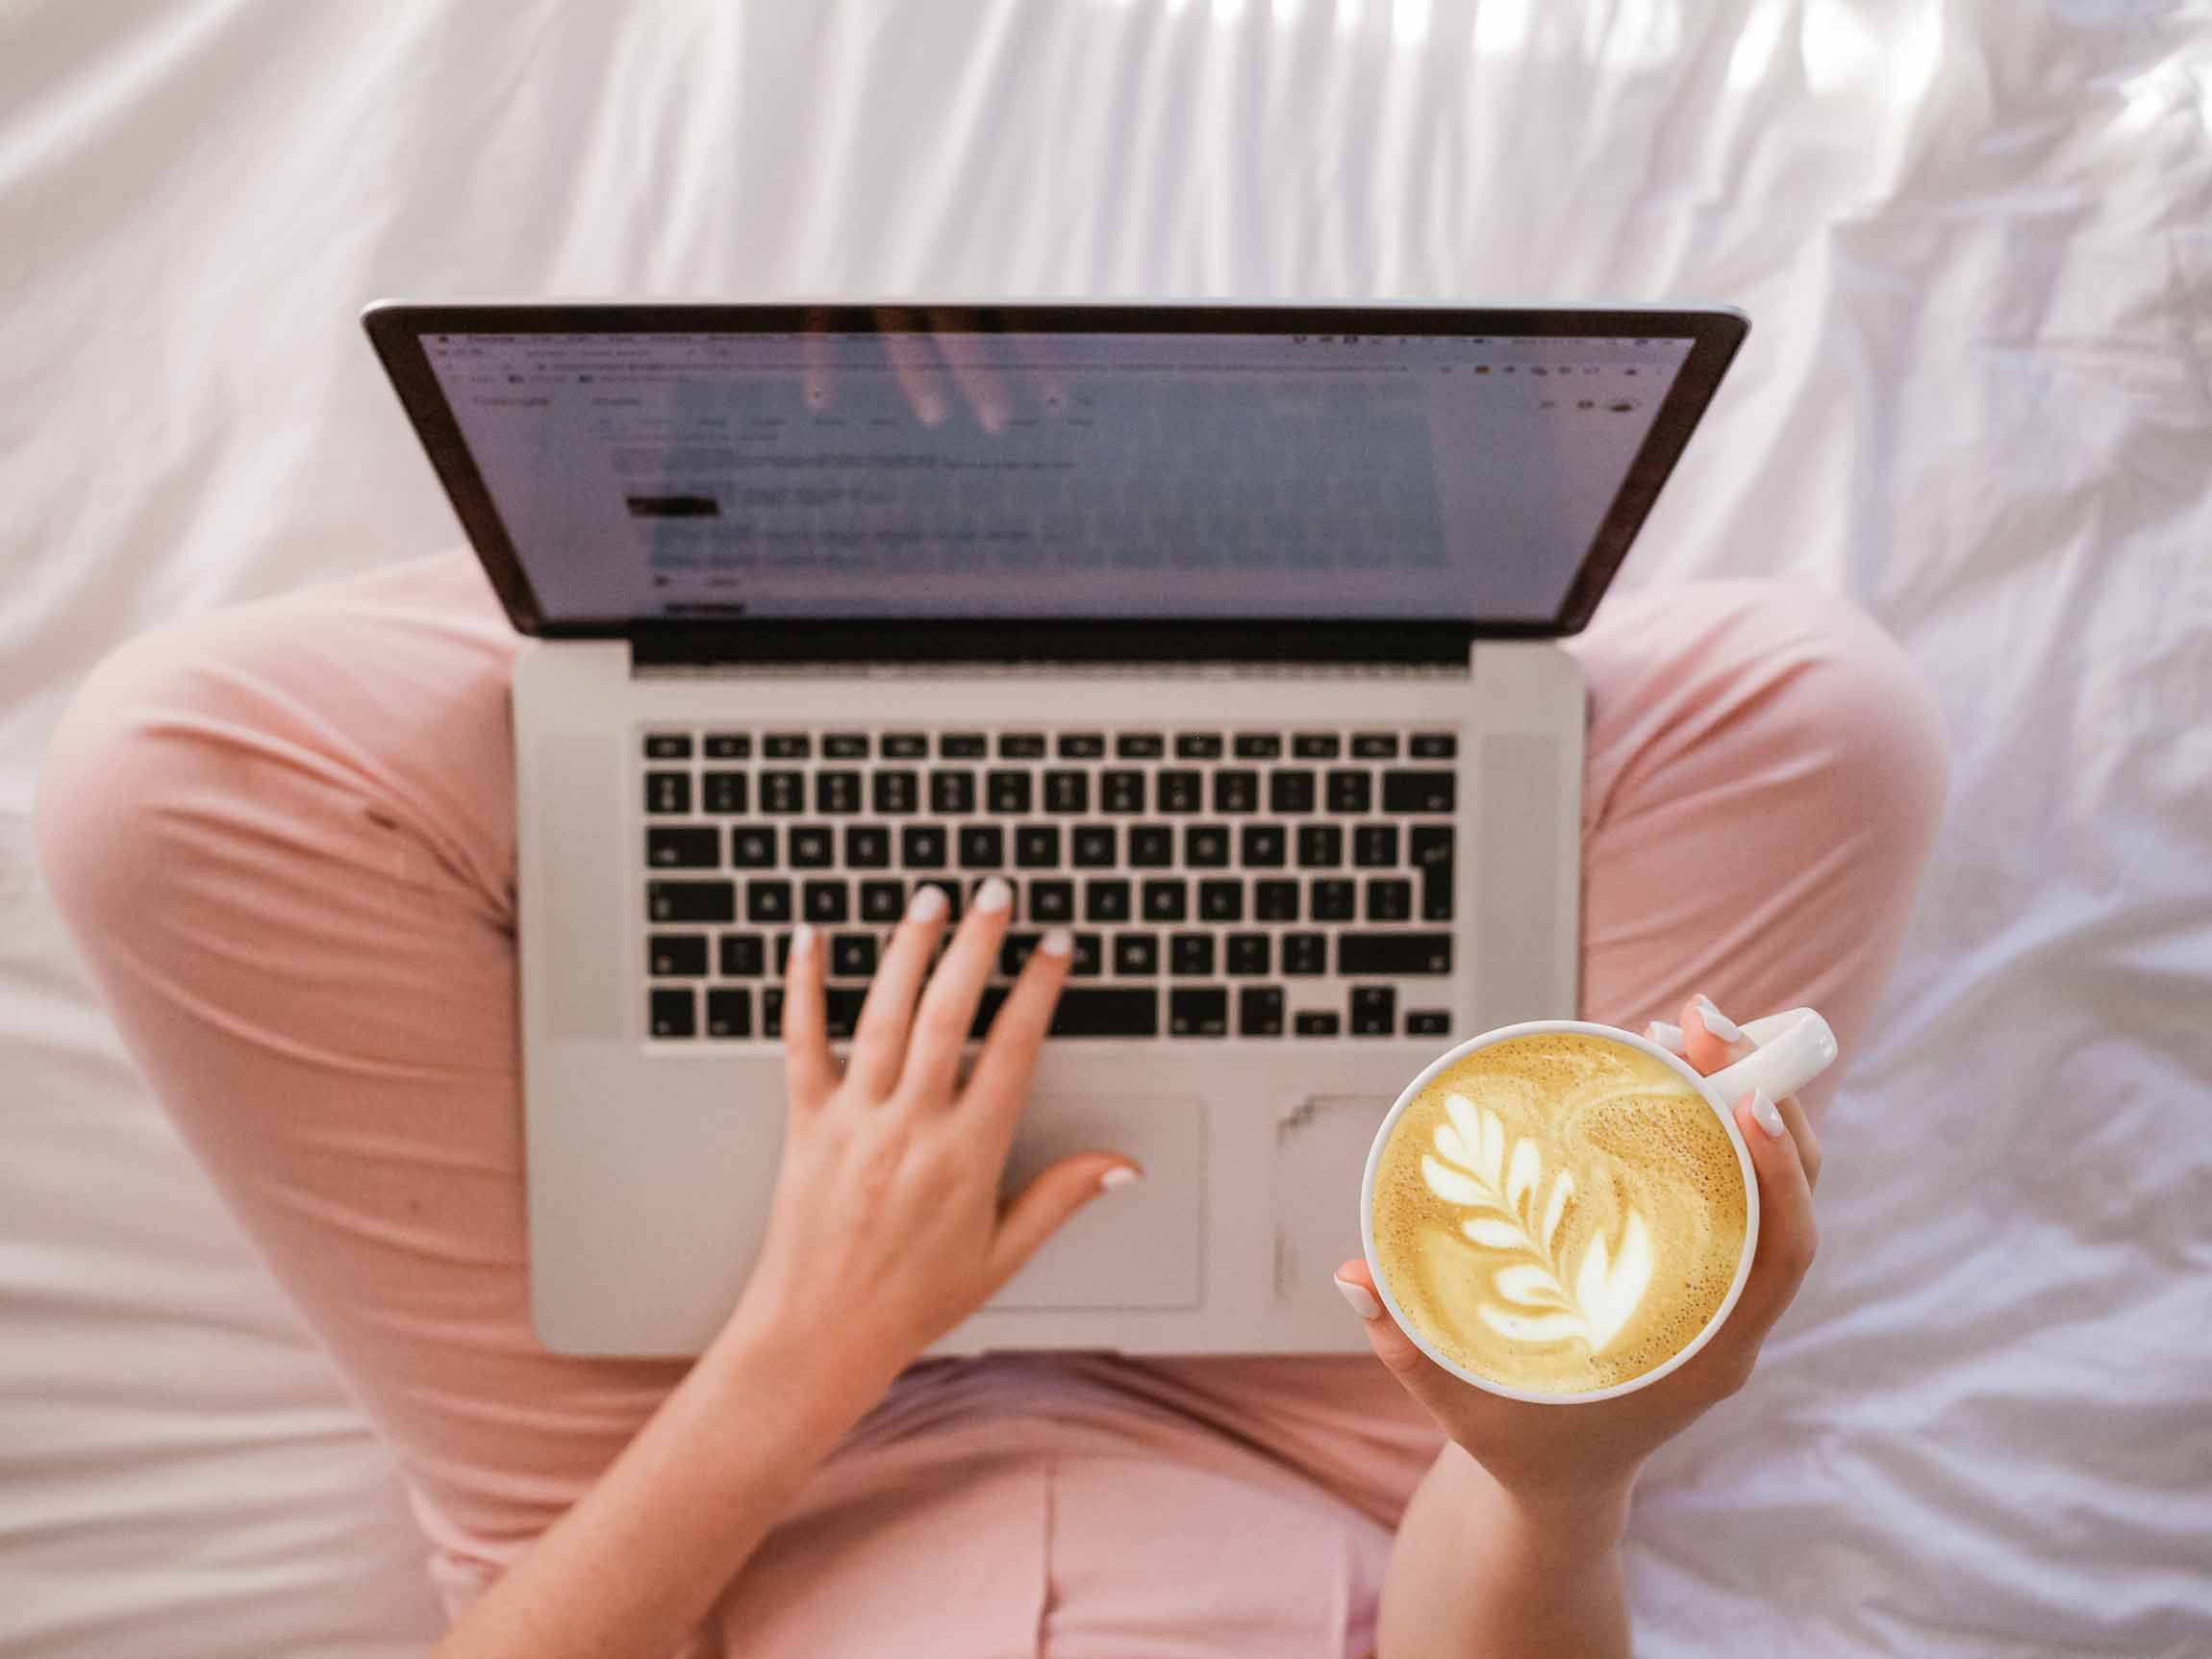 girl reading newsletter in laptop computer while holding a latte